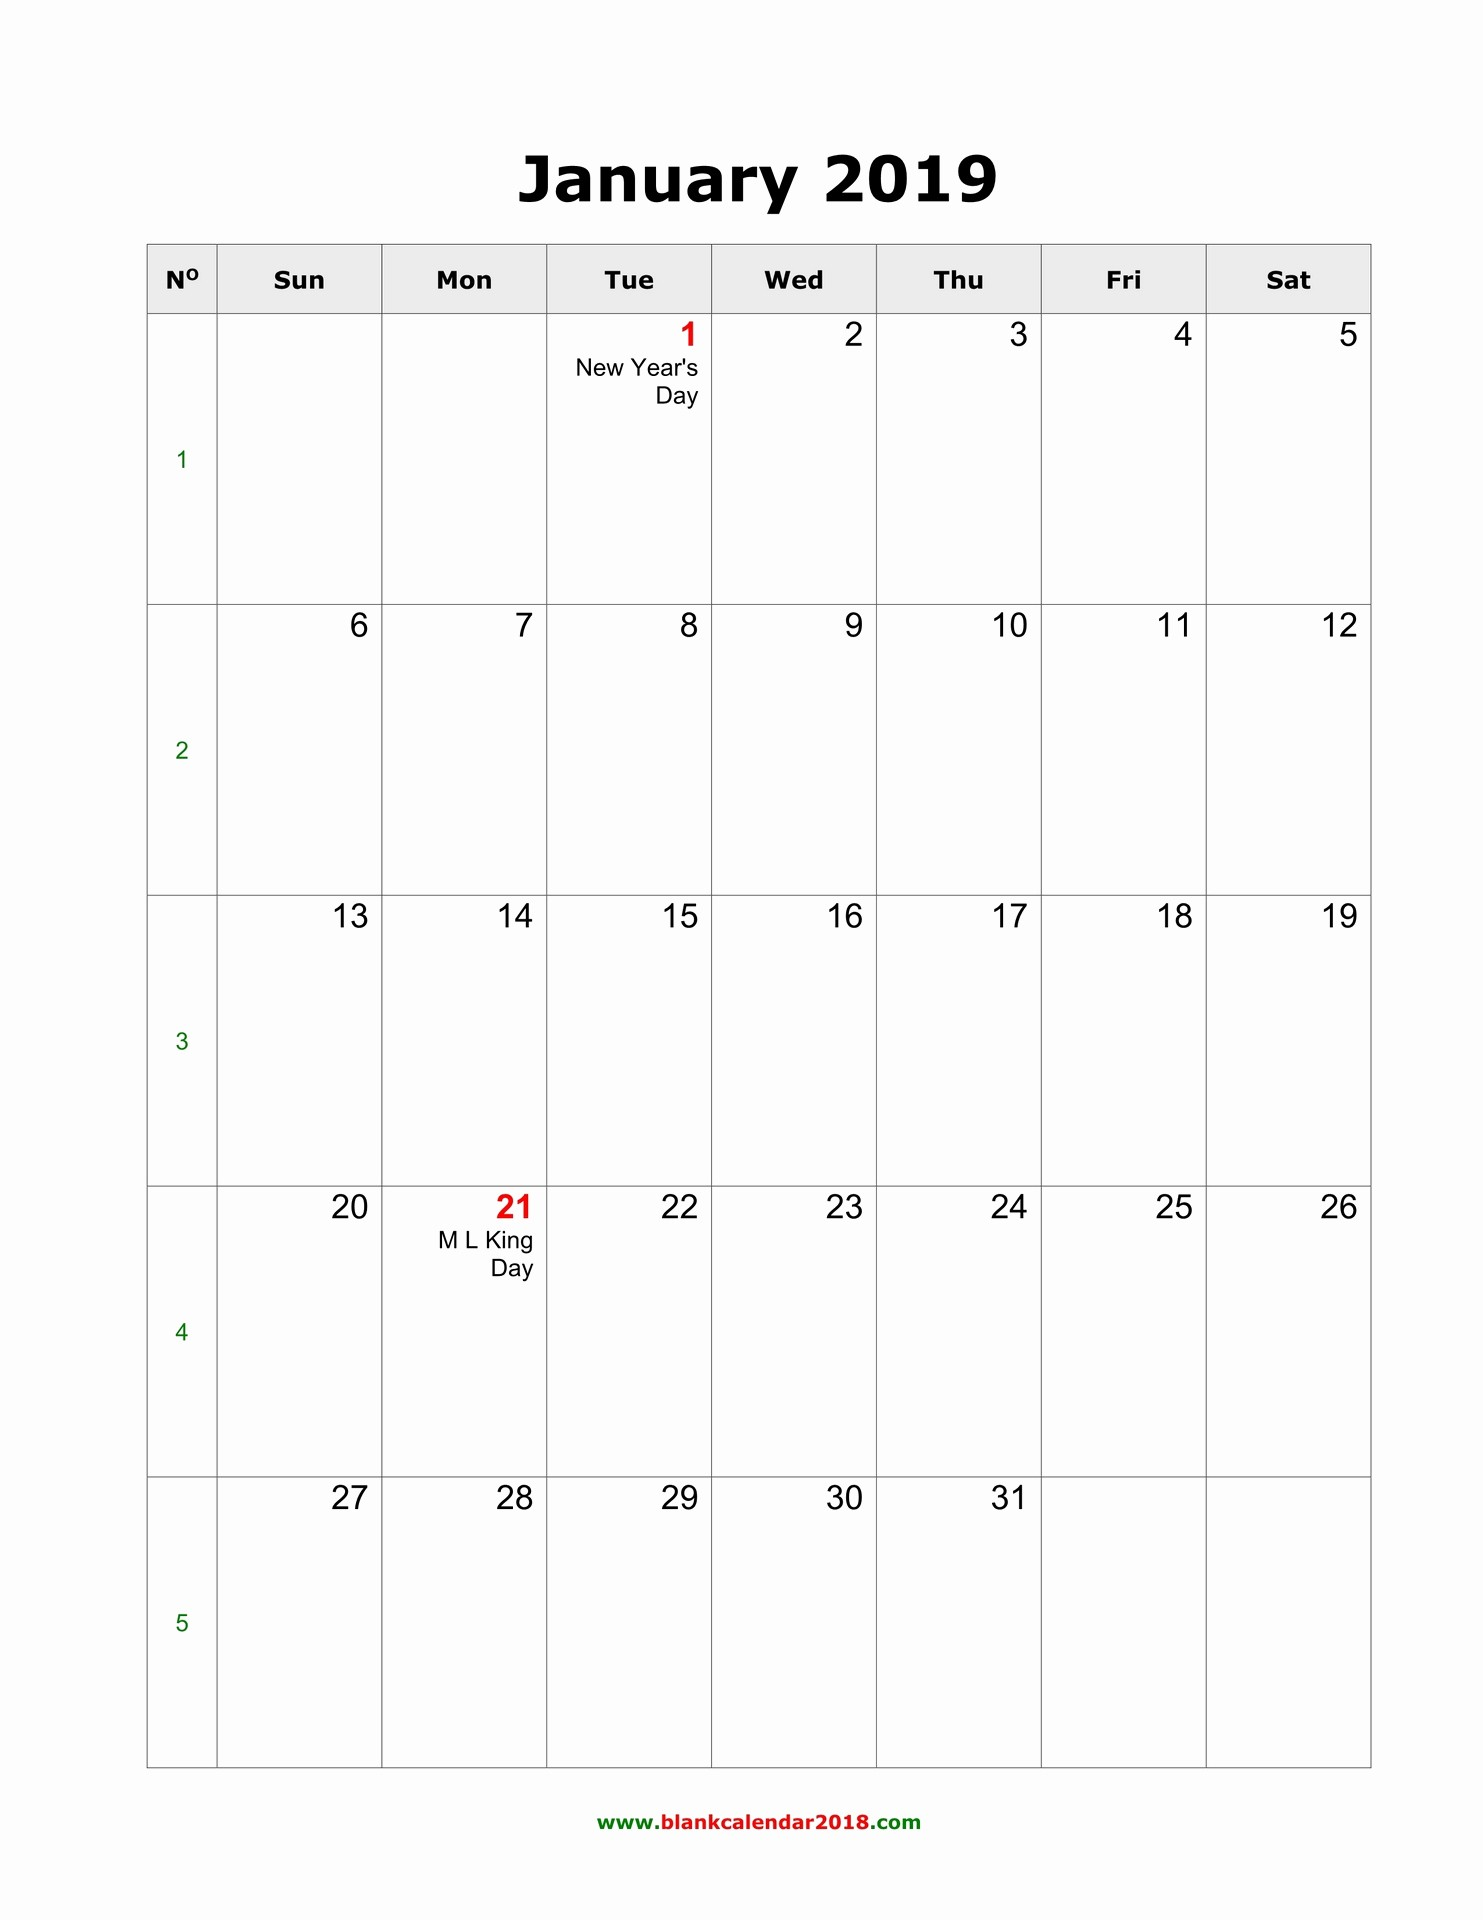 2019 Printable Calendar by Month Best Of Blank Calendar 2019